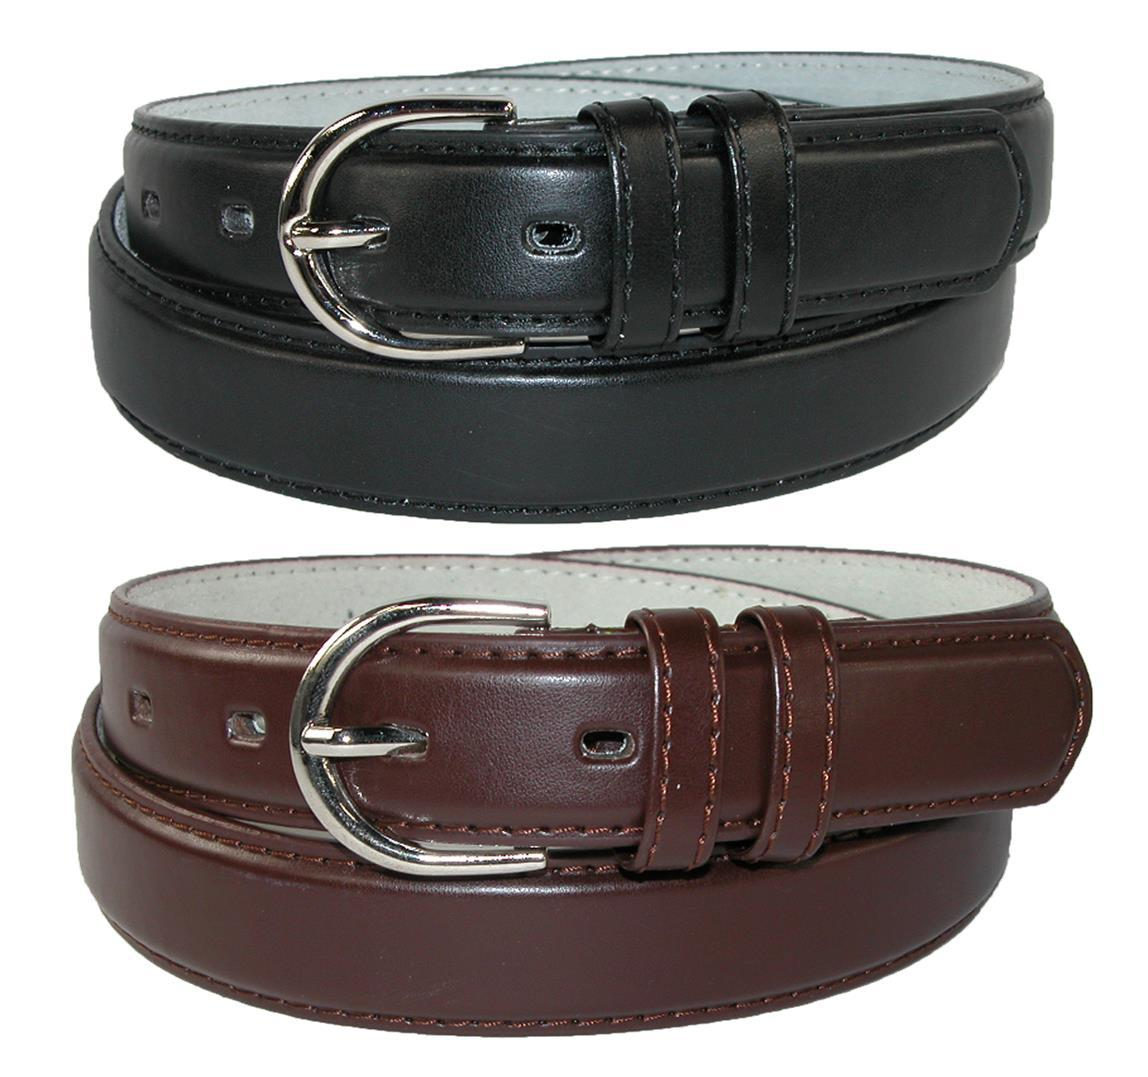 Ctm Womens Leather 1 1/8 Inch Dress Belt (pack Of 2 Colors)